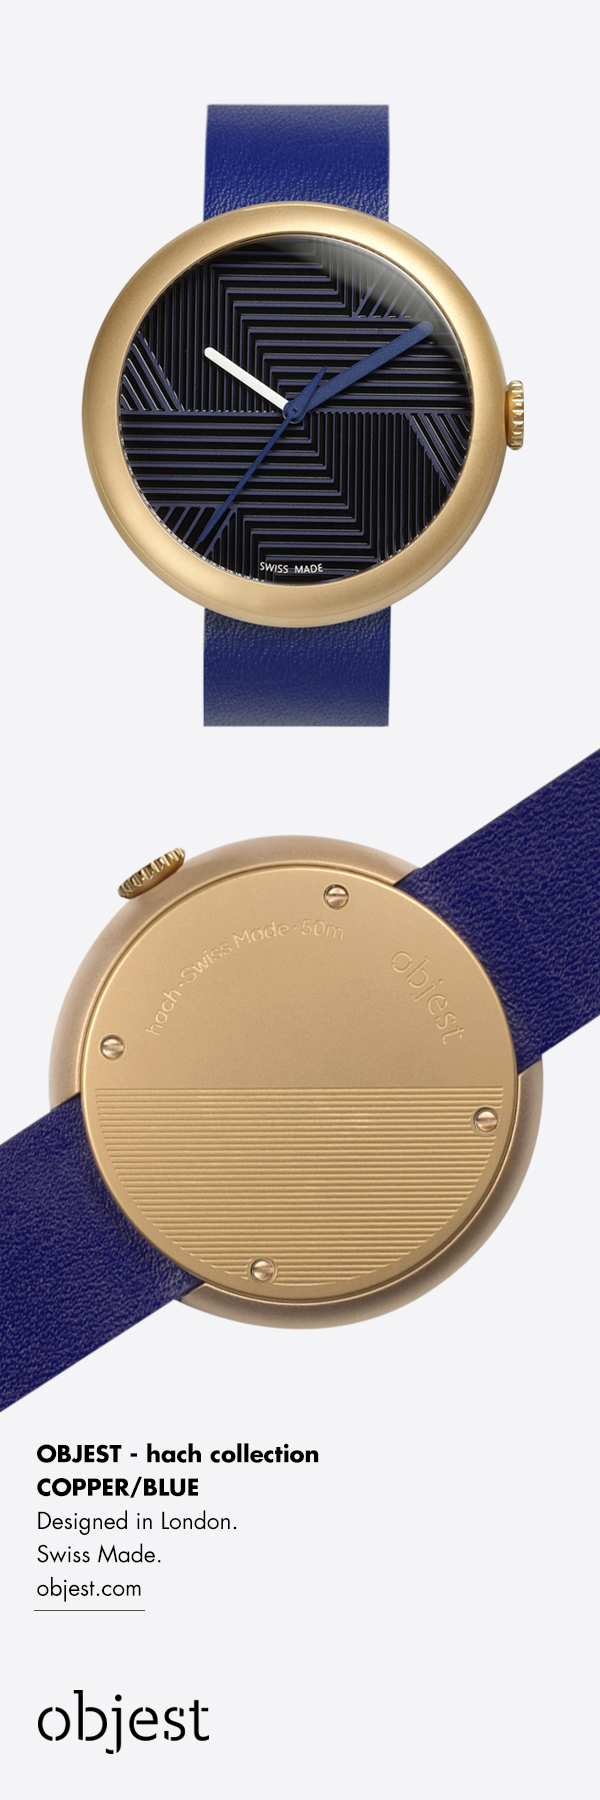 Objest copper blue watch - The timepiece features a numberless dial design with a 3D hatched pattern that indicates the twelve points of a traditional watch face. Our premium Swiss watches have a 40 mm Charcoal DLC case and black Italian leather strap. Swiss Made, 50m water resistance, 2 year warranty £239. We celebrate creativity. http://objest.com